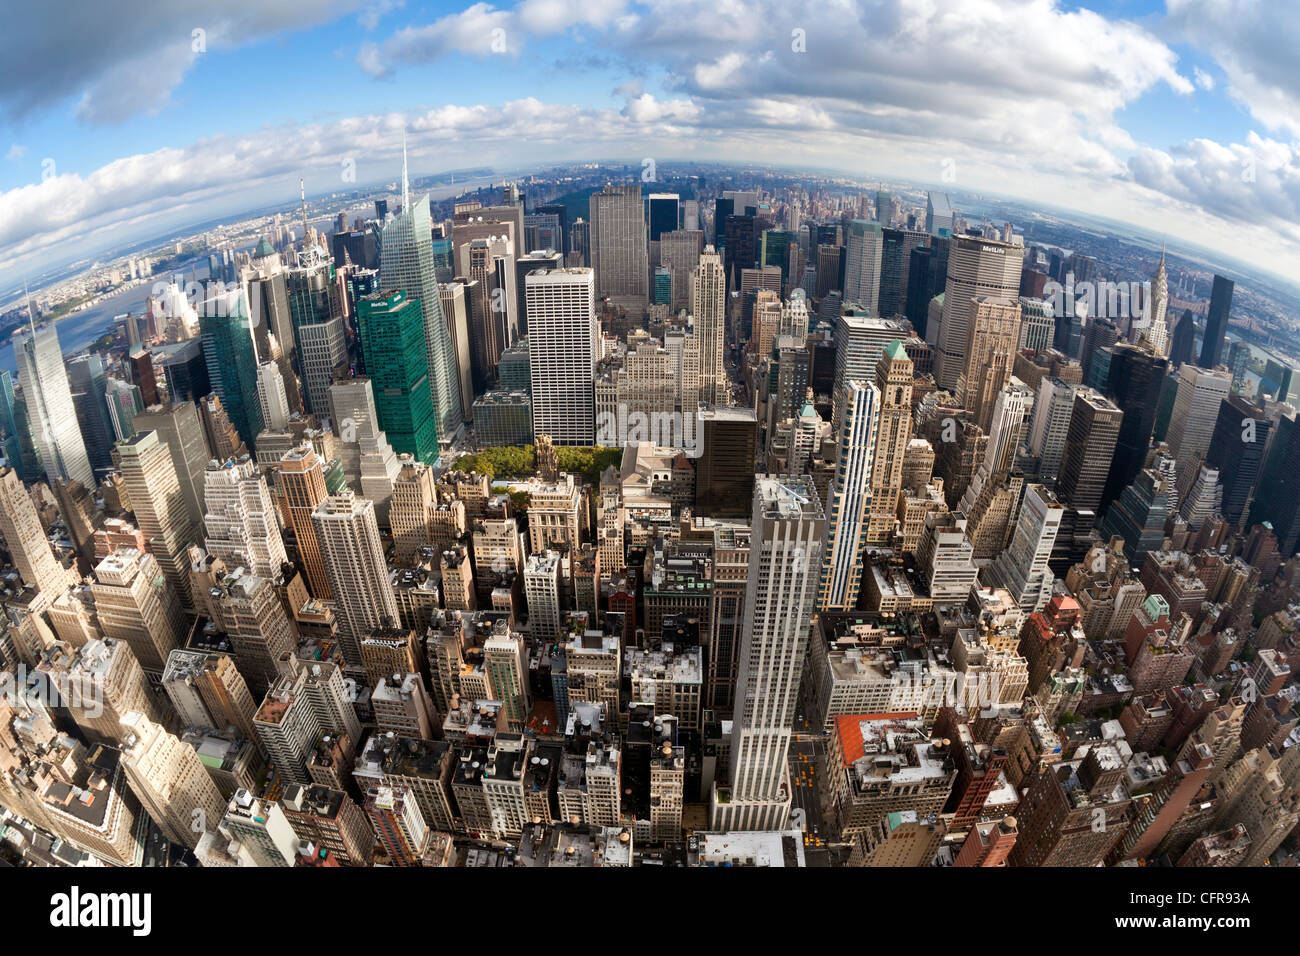 Manhattan view from the  Empire State Building, New York City, New York, United States of America, North America - Stock Image